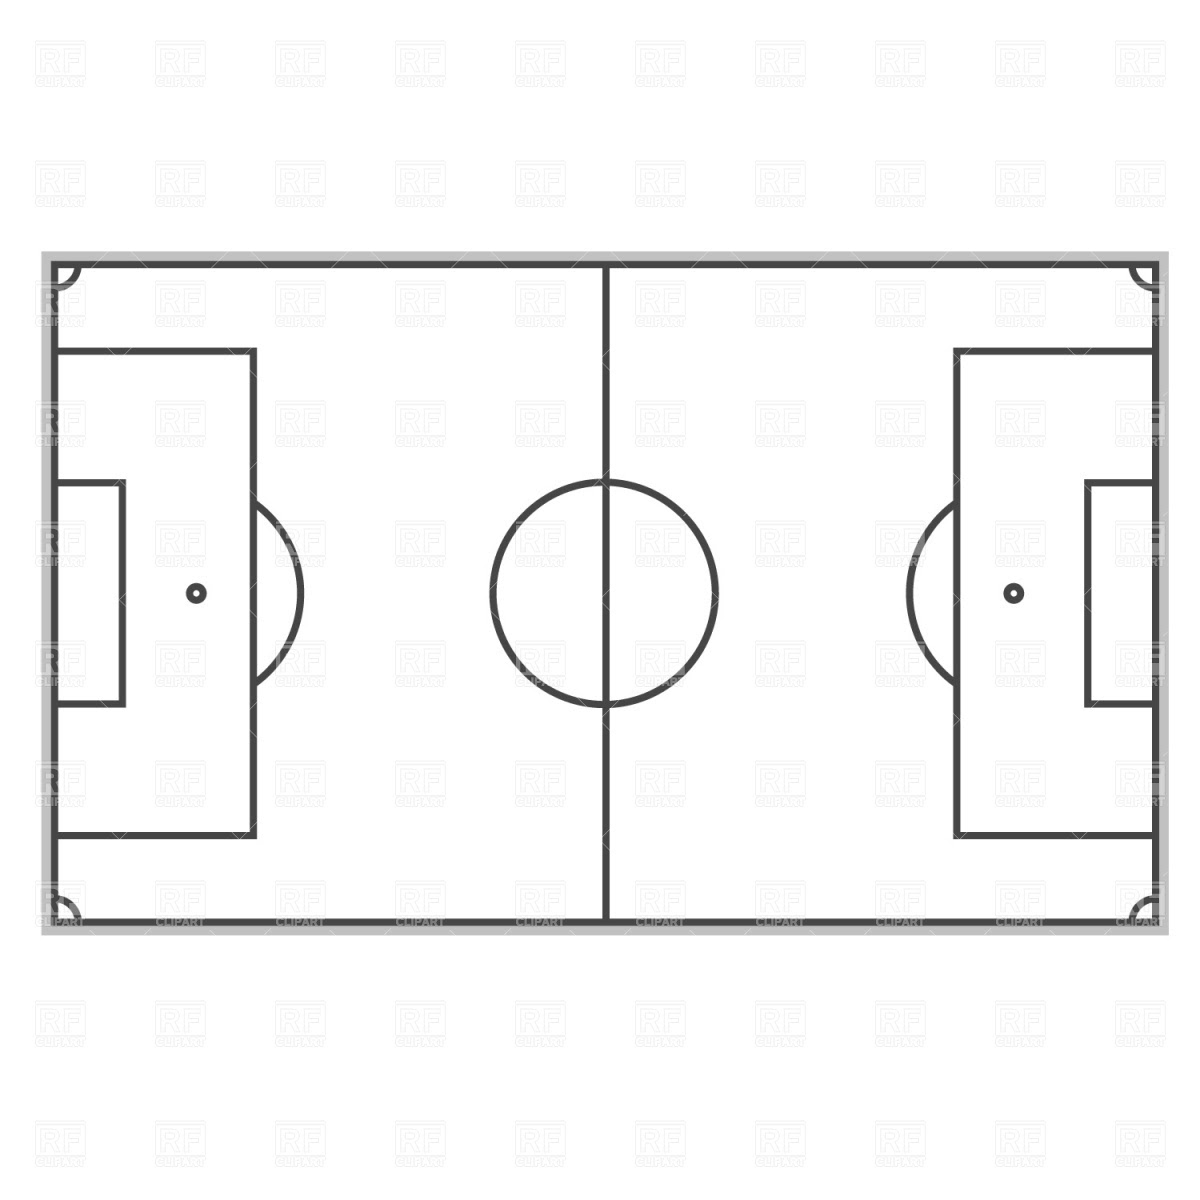 Free Soccer Field Layout, Download Free Clip Art, Free ...